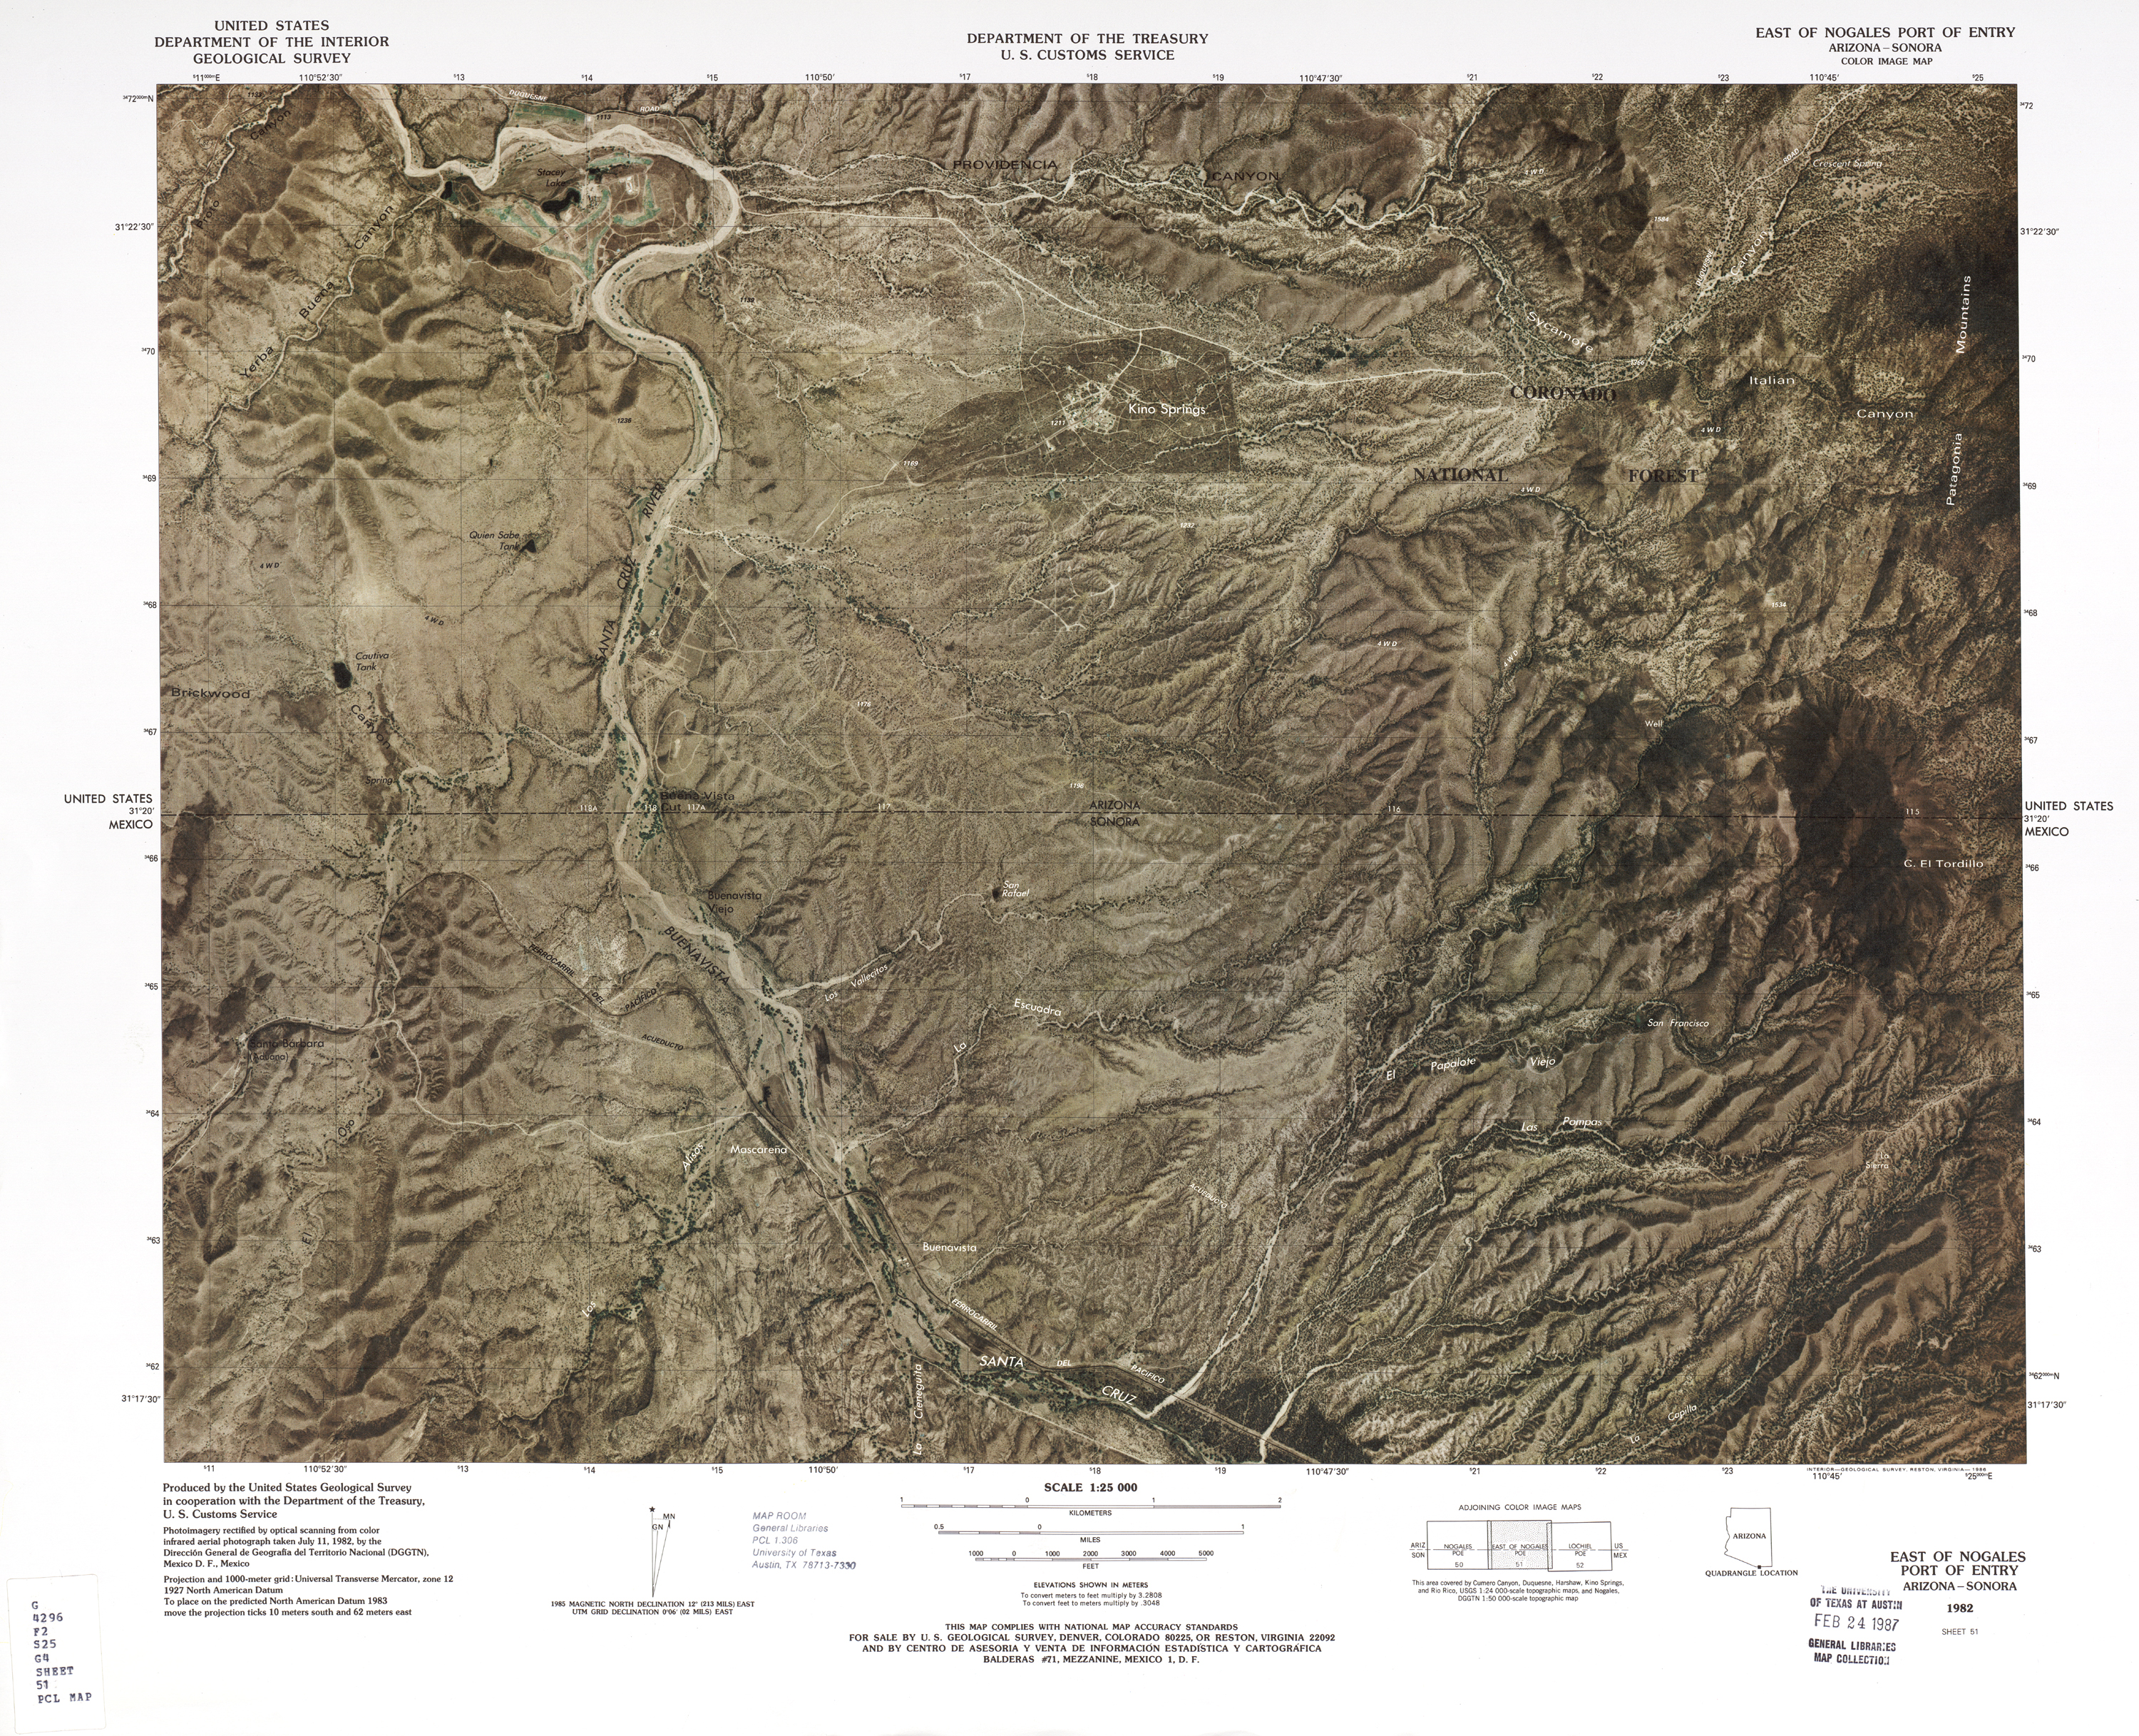 United States-Mexico Border Map, East of Nogales Port of Entry